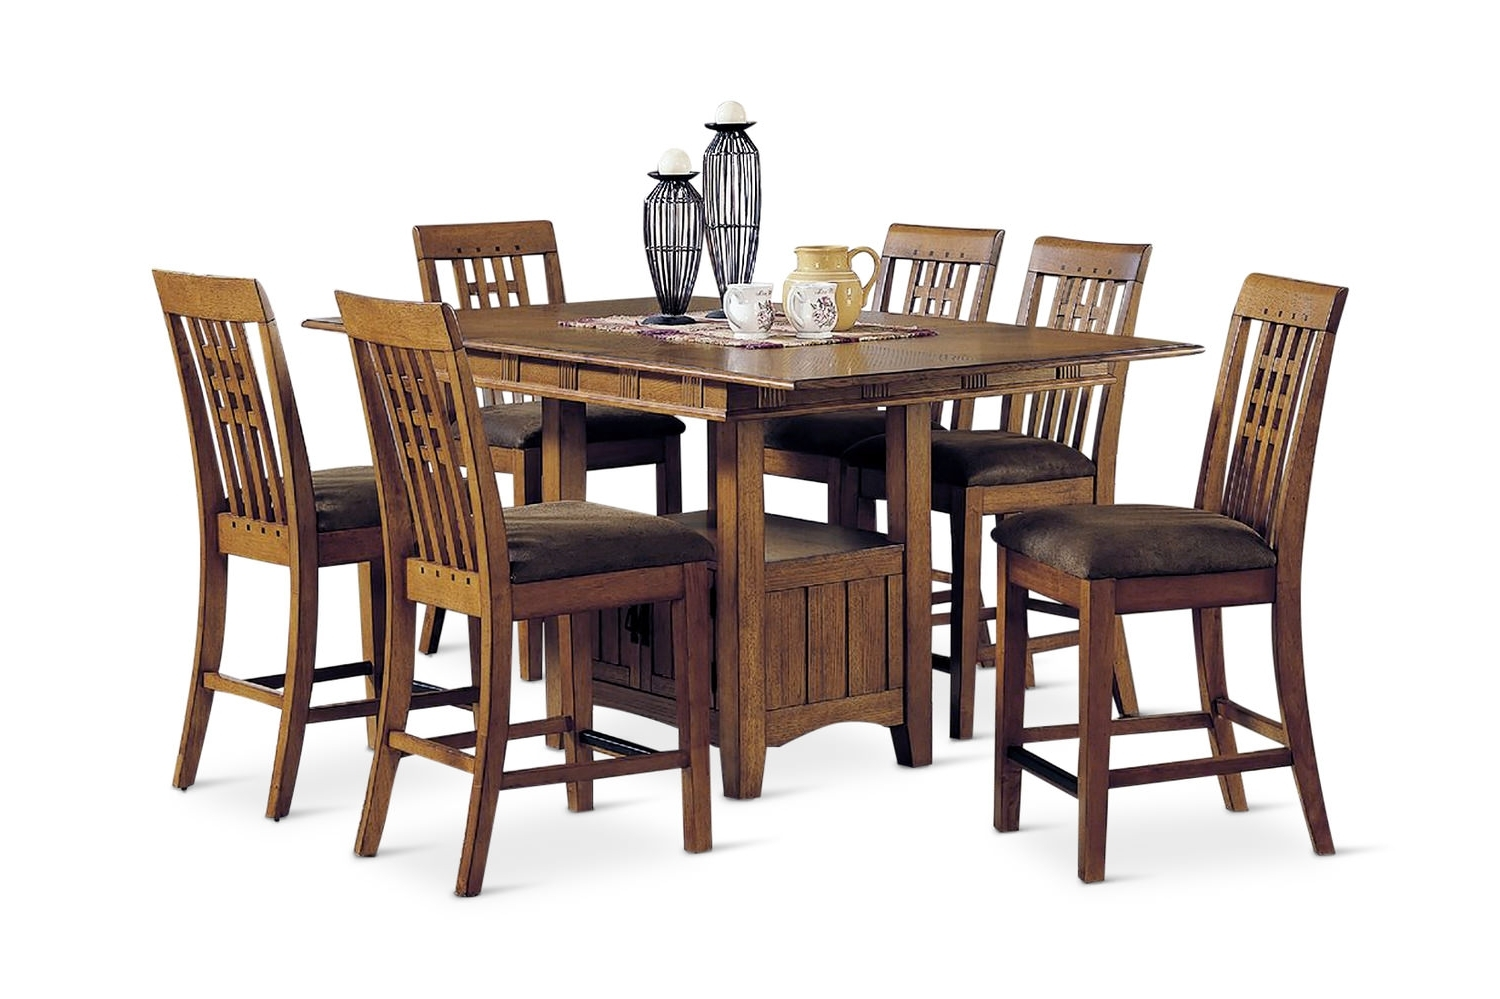 Dining Sets – Kitchen & Dining Room Sets – Hom Furniture For Preferred Craftsman 5 Piece Round Dining Sets With Uph Side Chairs (Gallery 6 of 25)